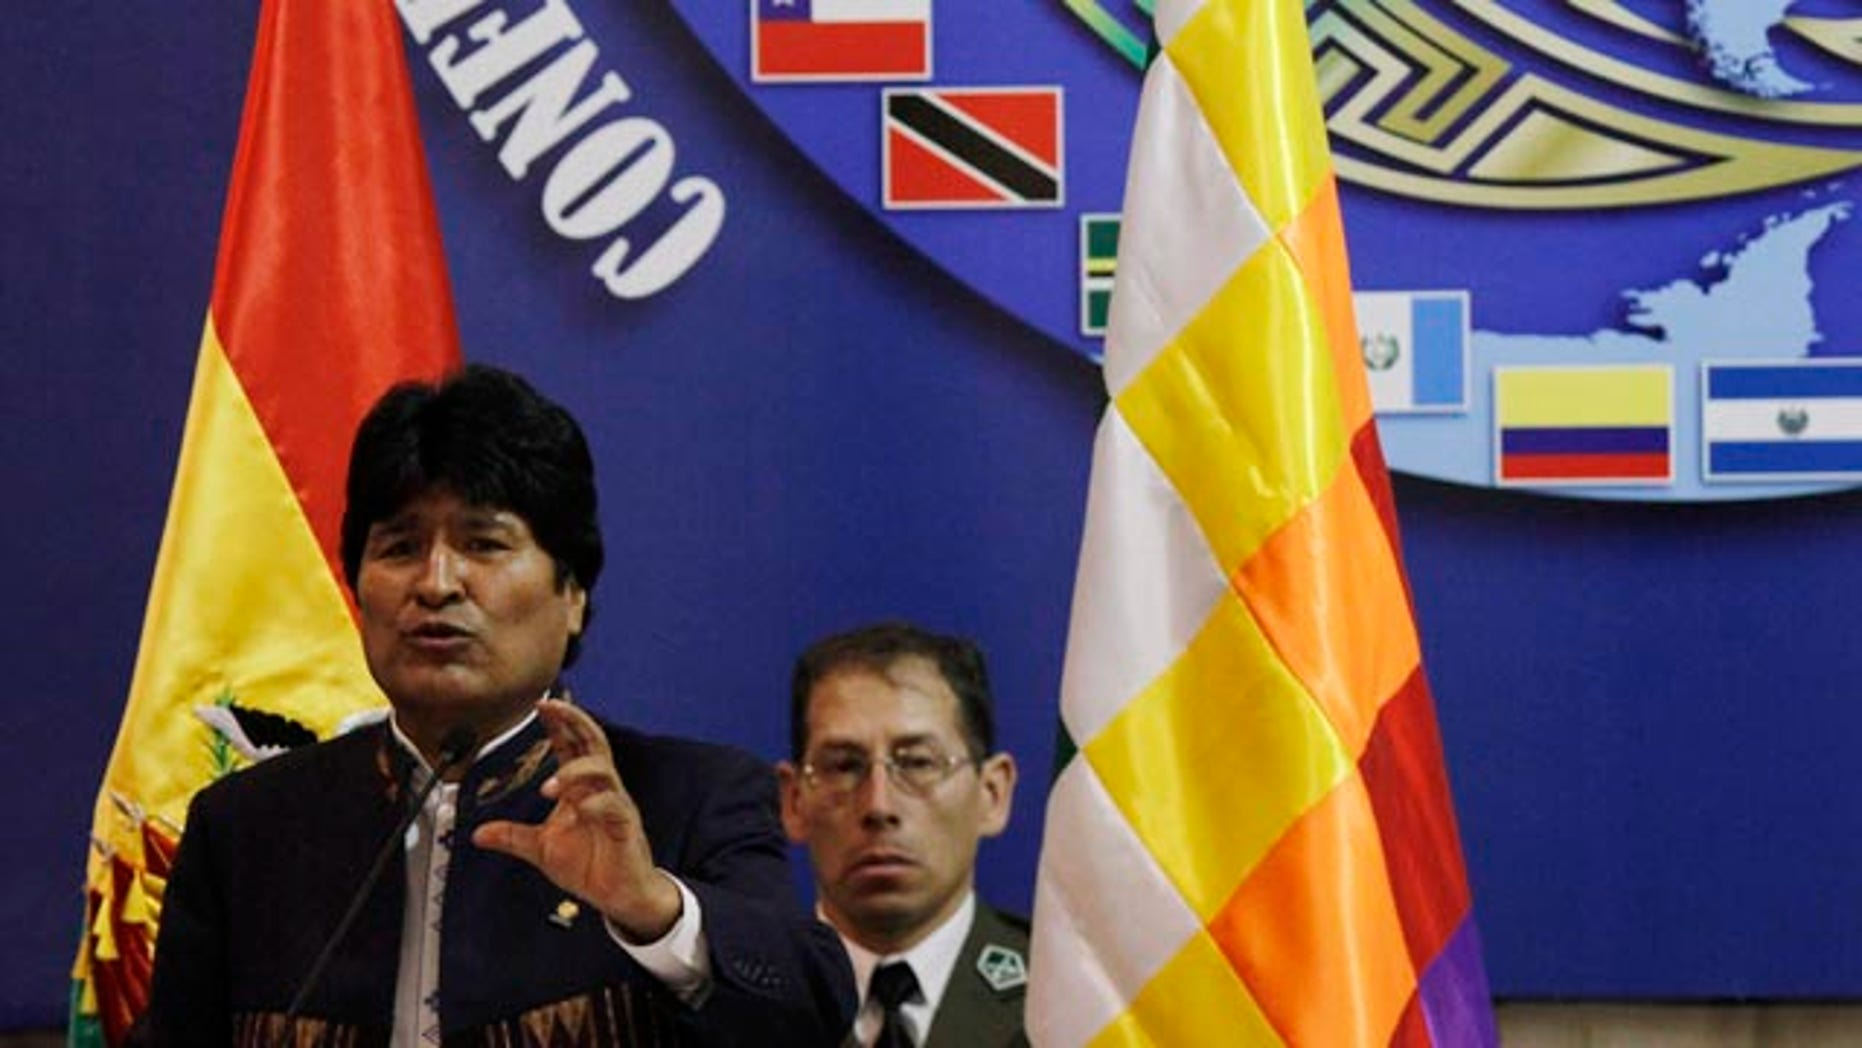 Nov. 22: Bolivia's president Evo Morales speaks during the opening of the Ninth Conference of Defense Ministers of the Americas (CDMA) in Santa Cruz, Bolivia.